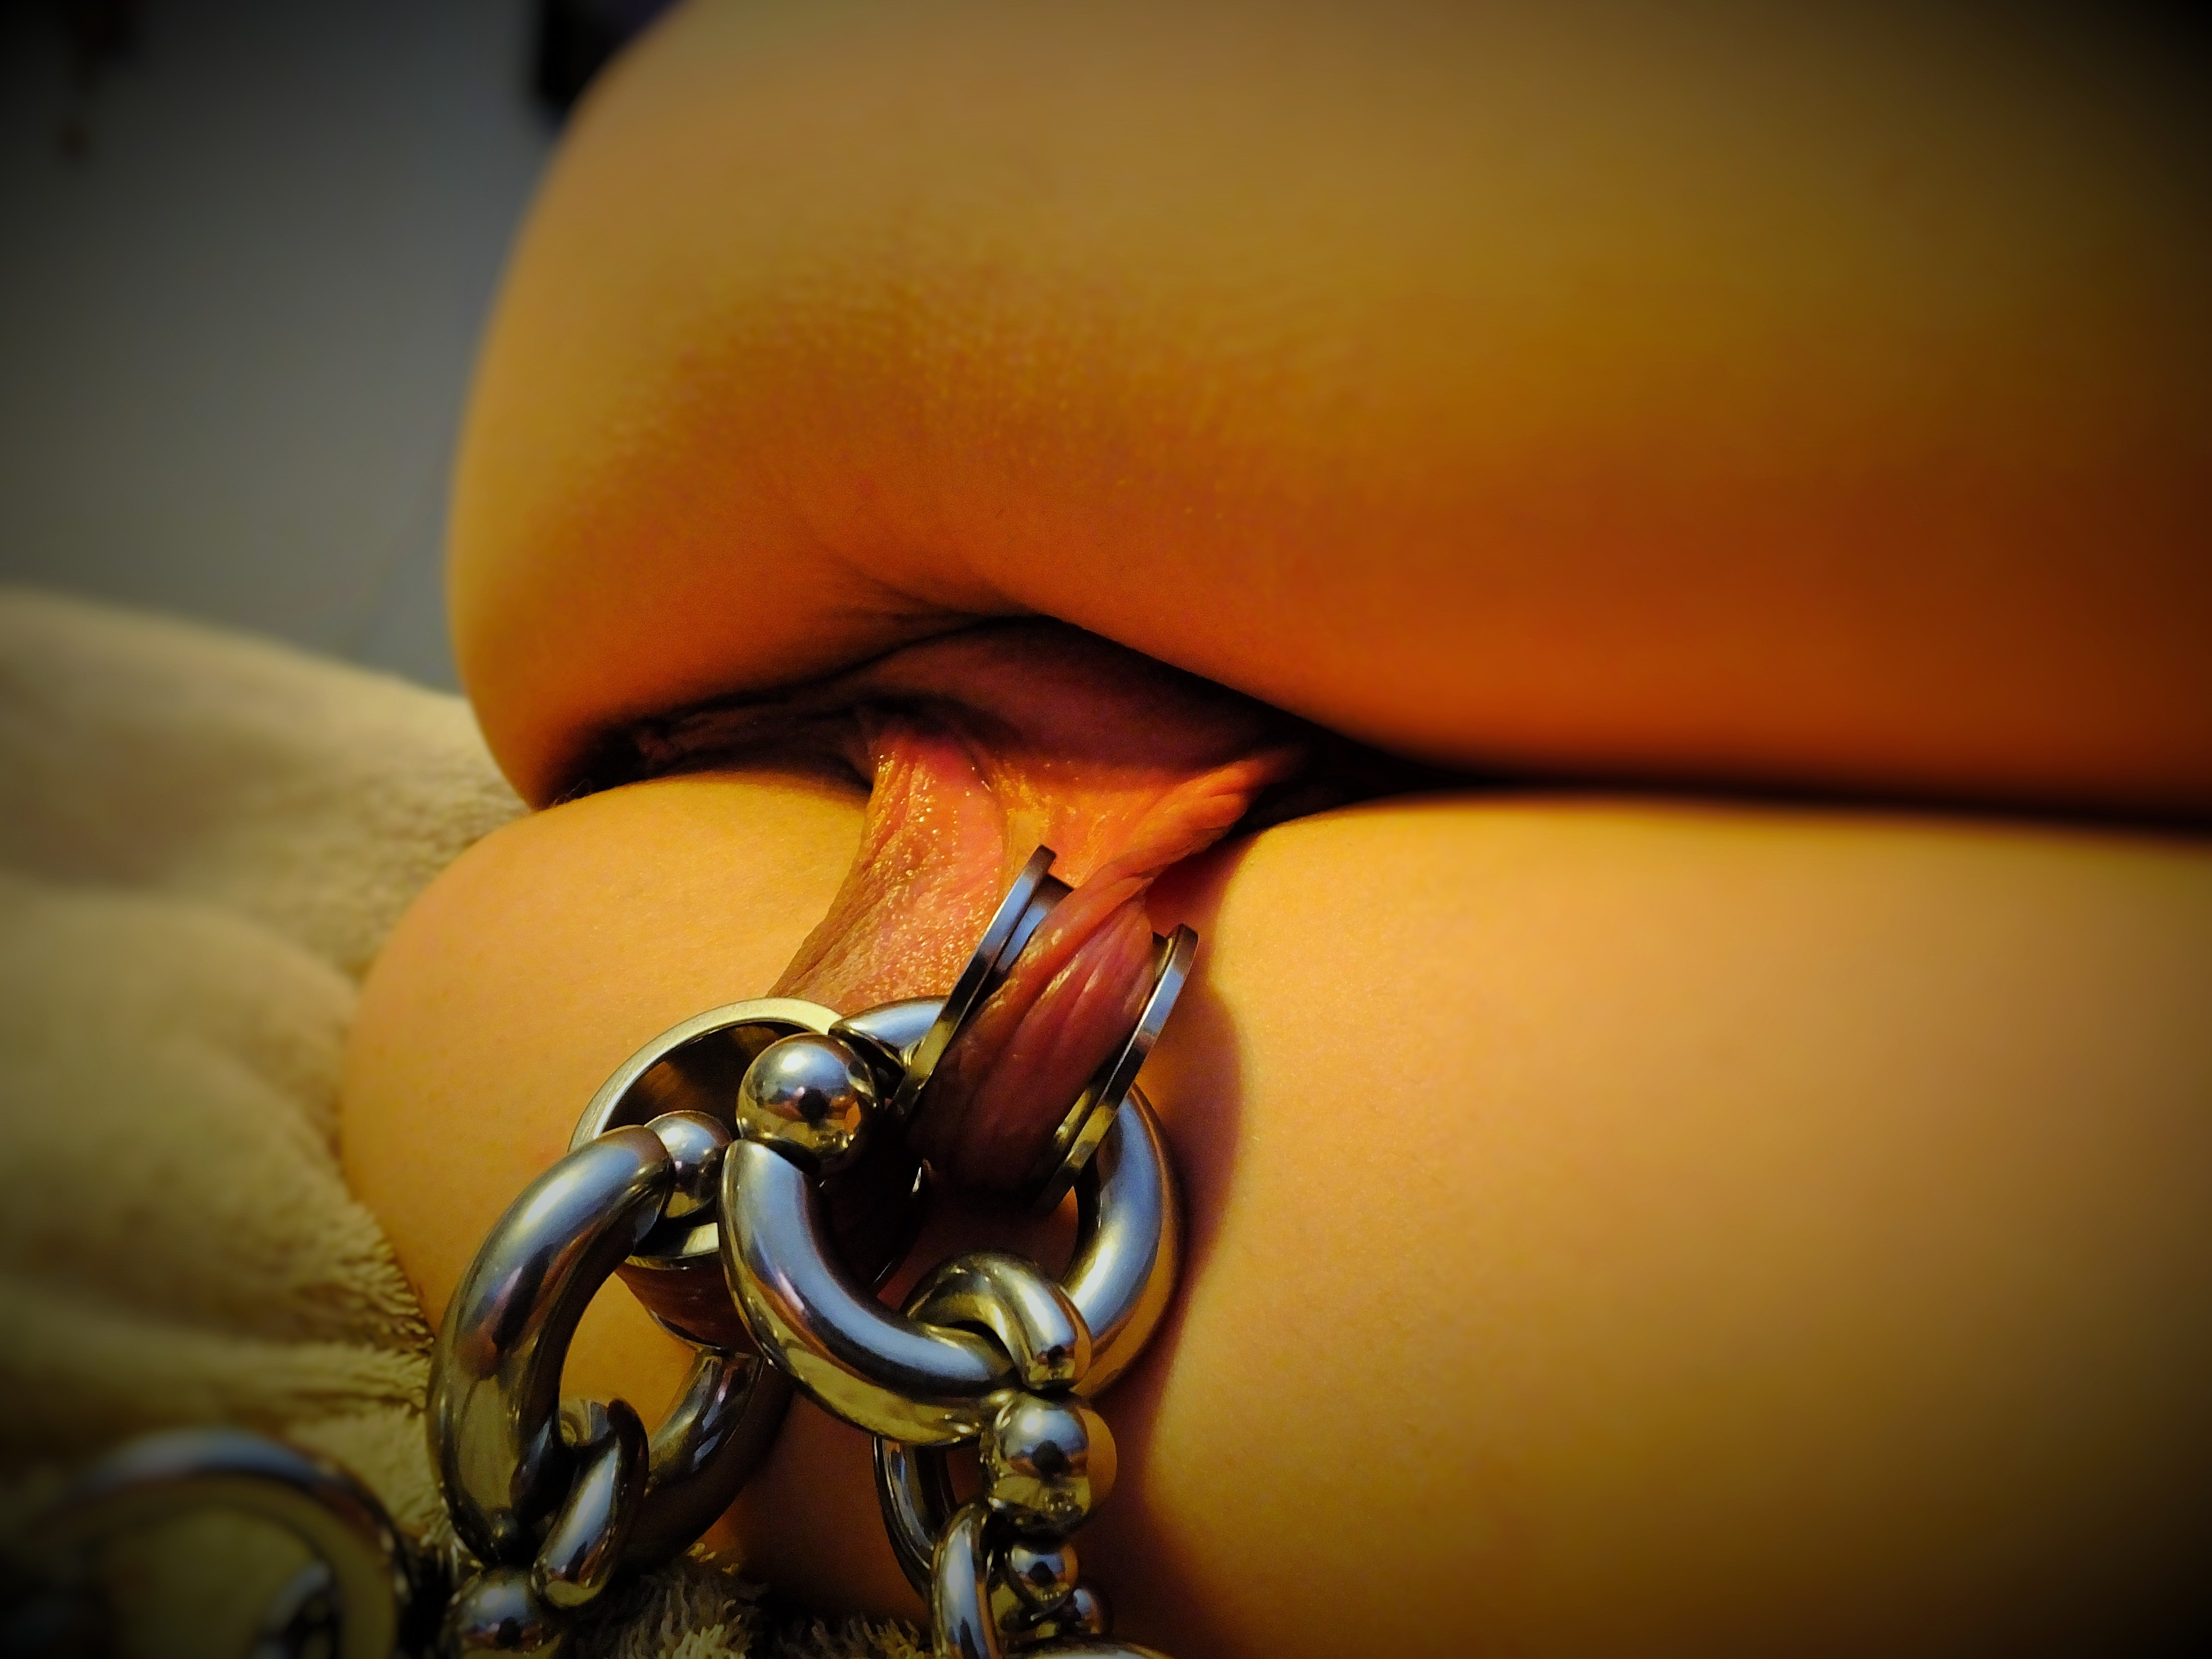 Pussy Pain Piercing Long Labia Big Chain Links Pulling -4812